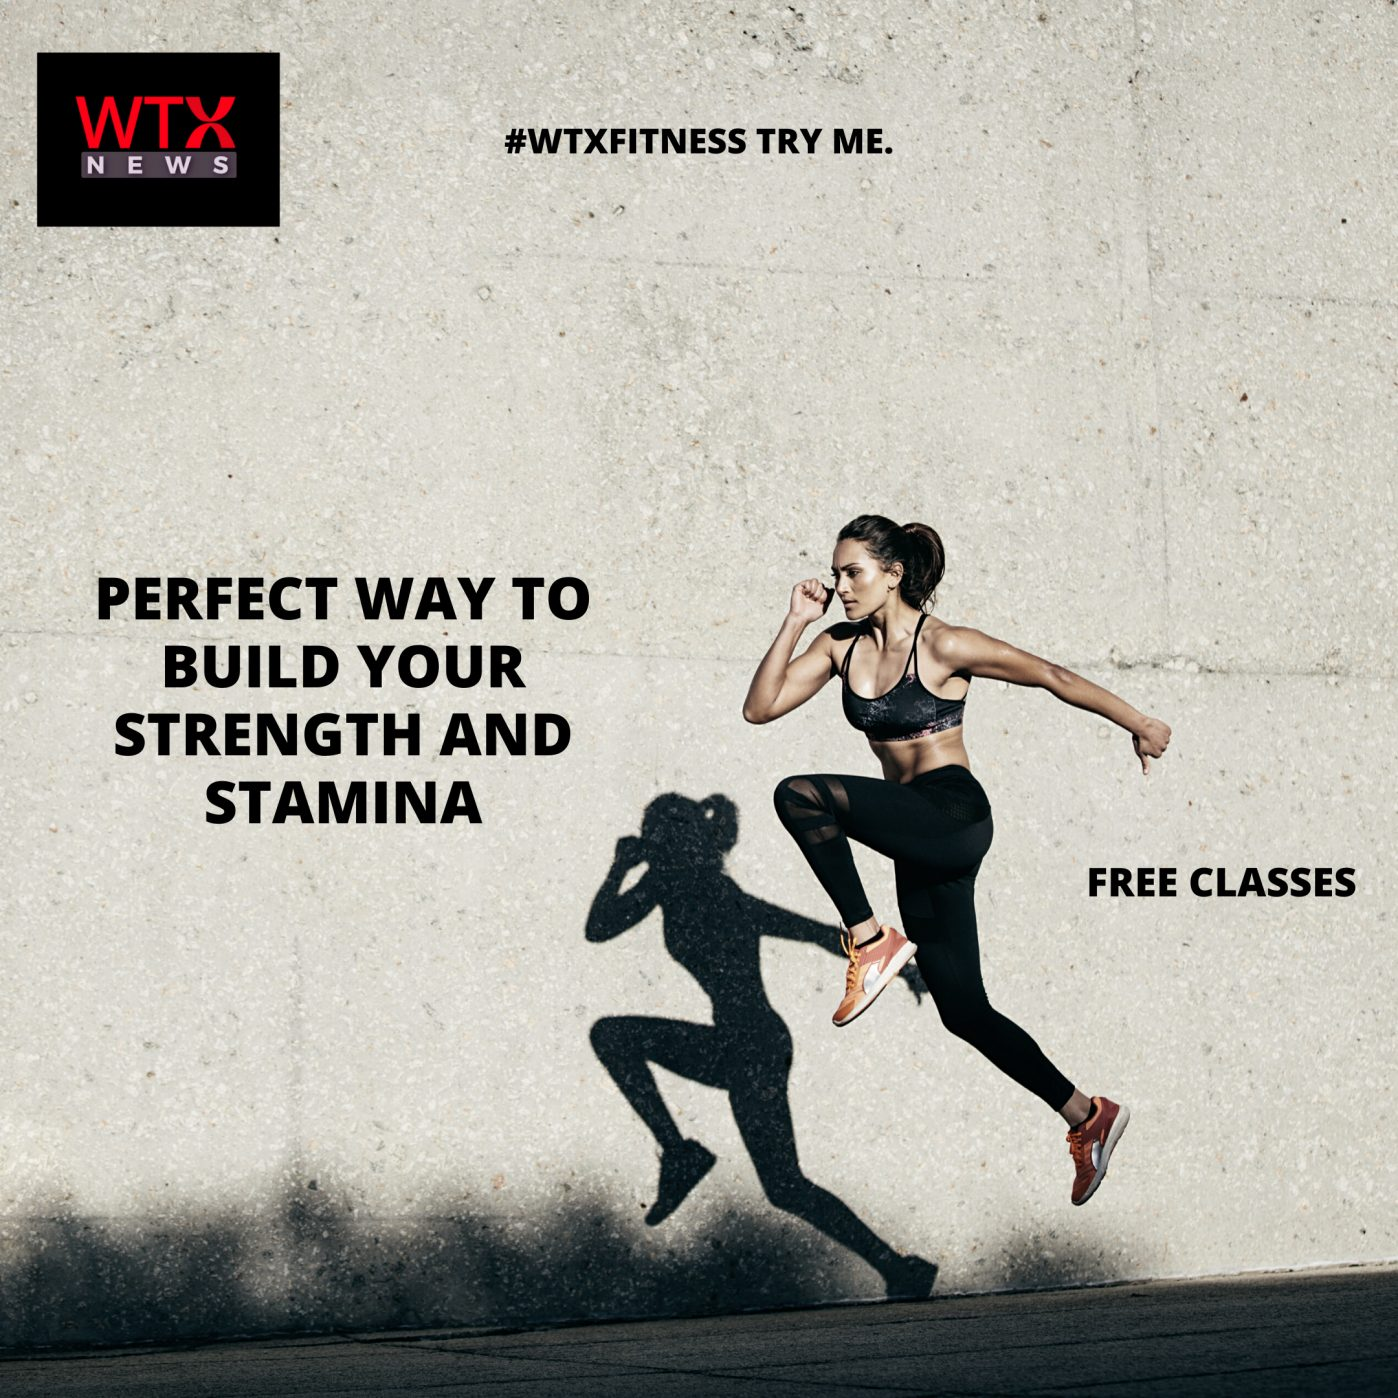 Stay fit stay healthy and join our free fitness classes online - We are a community